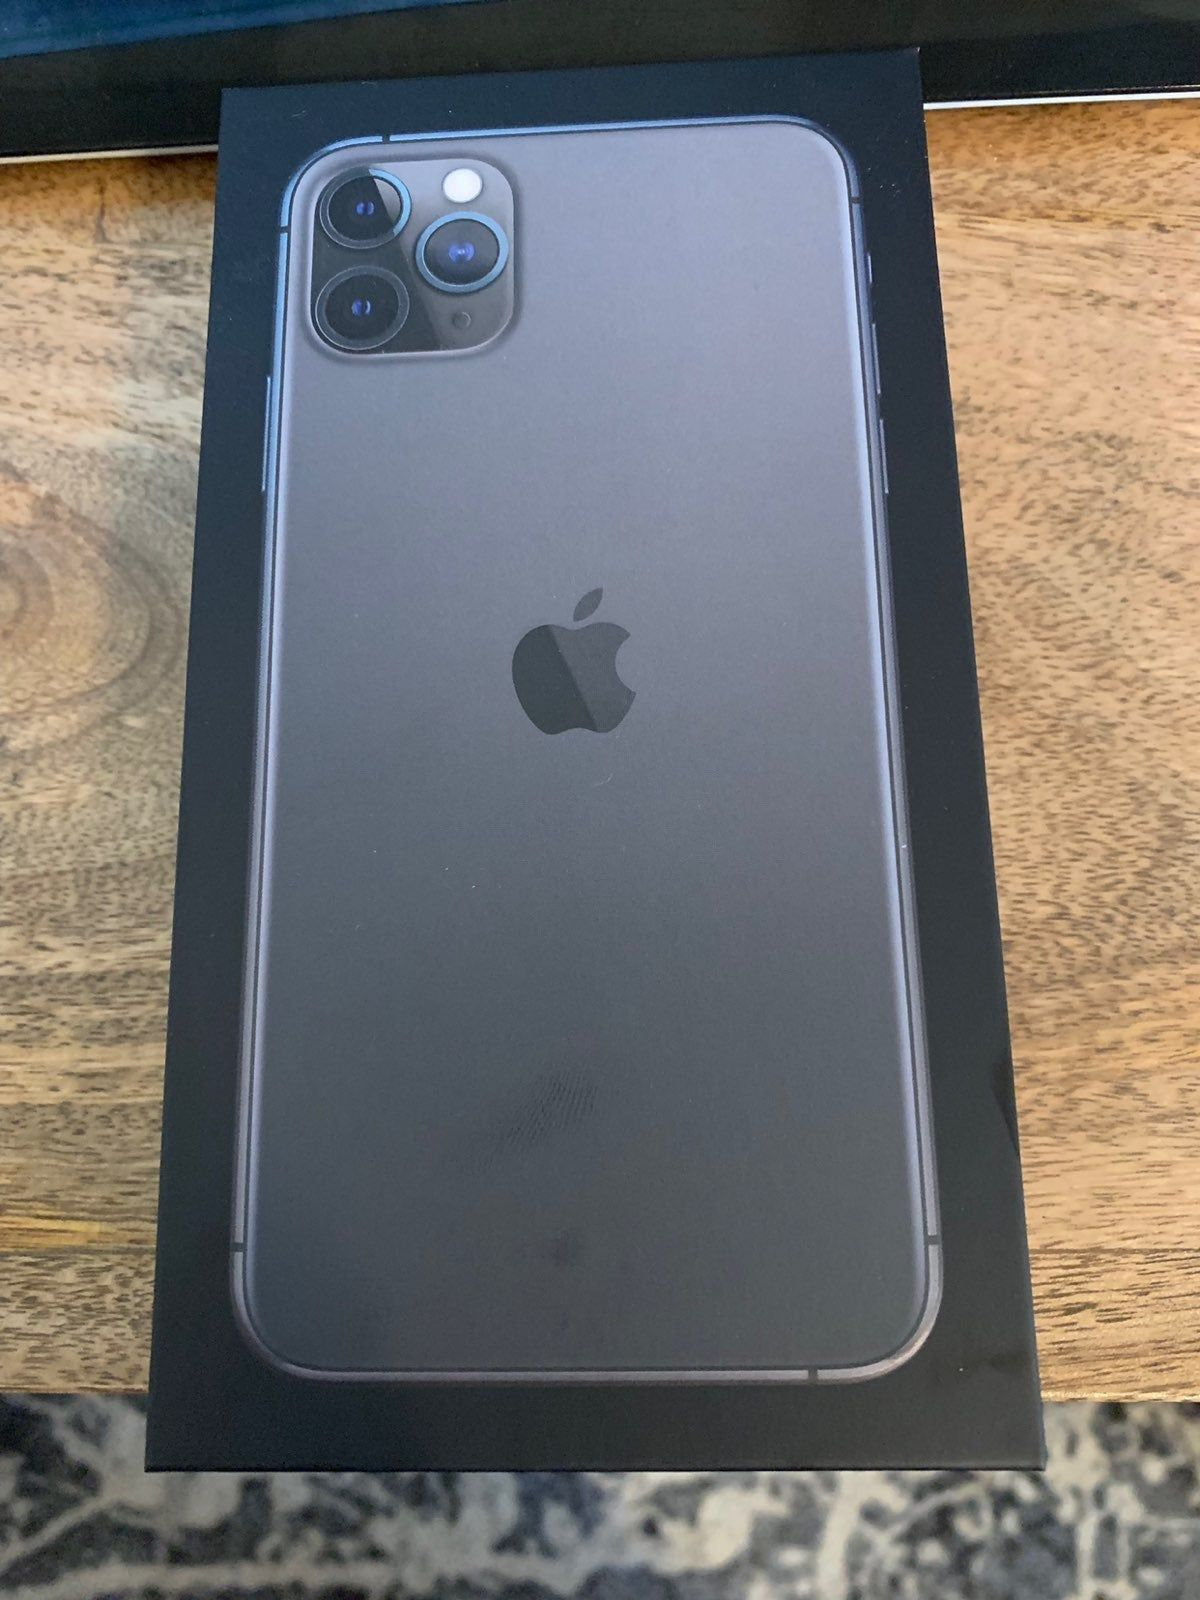 Iphone 11 Pro Max 64gb Box Only No Phone Iphone Iphone Phone Cases Iphone 11